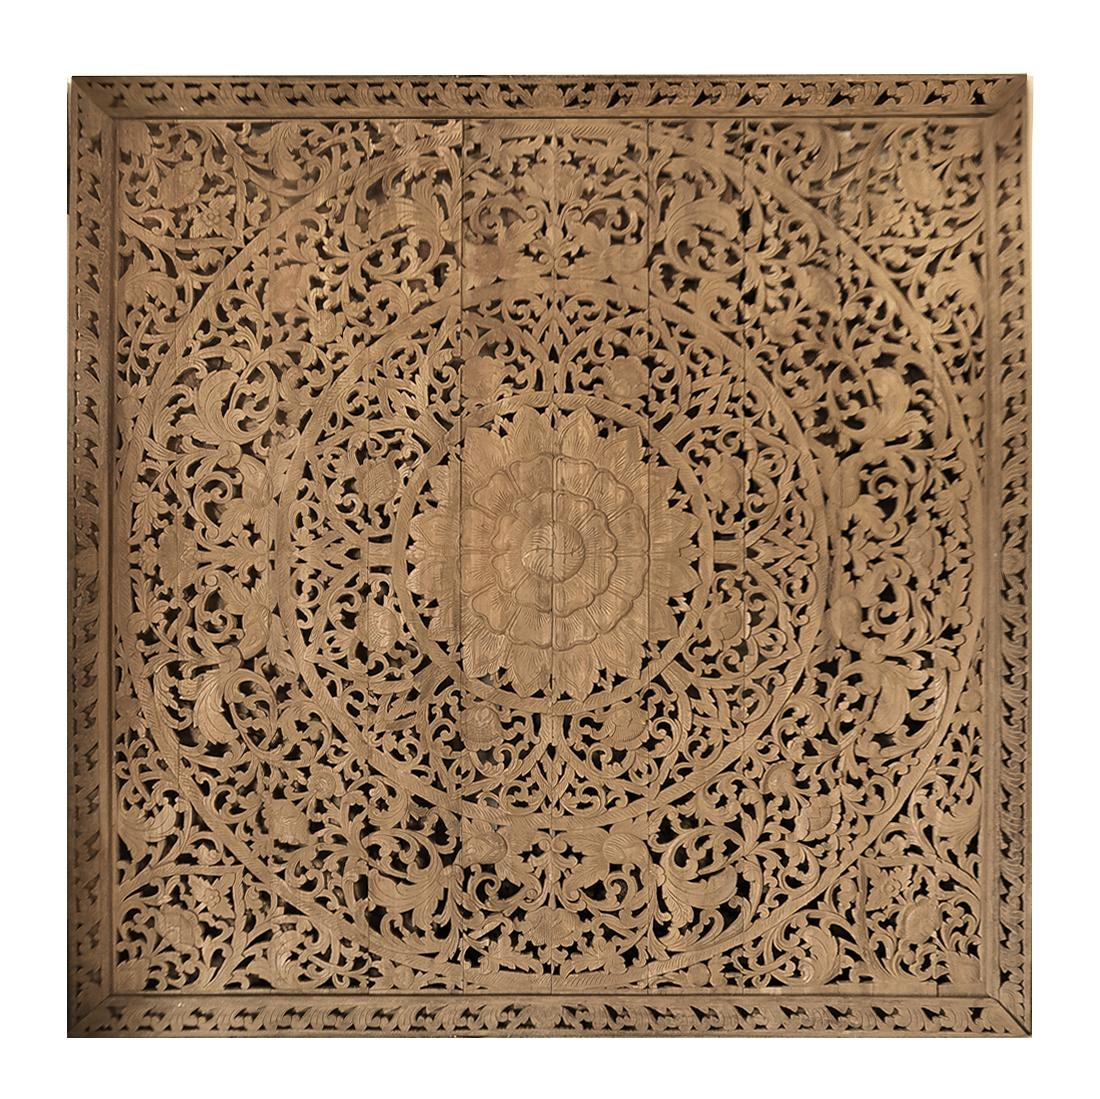 Large Grand Carved Wooden Wall Art Or Ceiling Panel – Siam Sawadee Regarding Wood Panel Wall Art (Image 7 of 20)